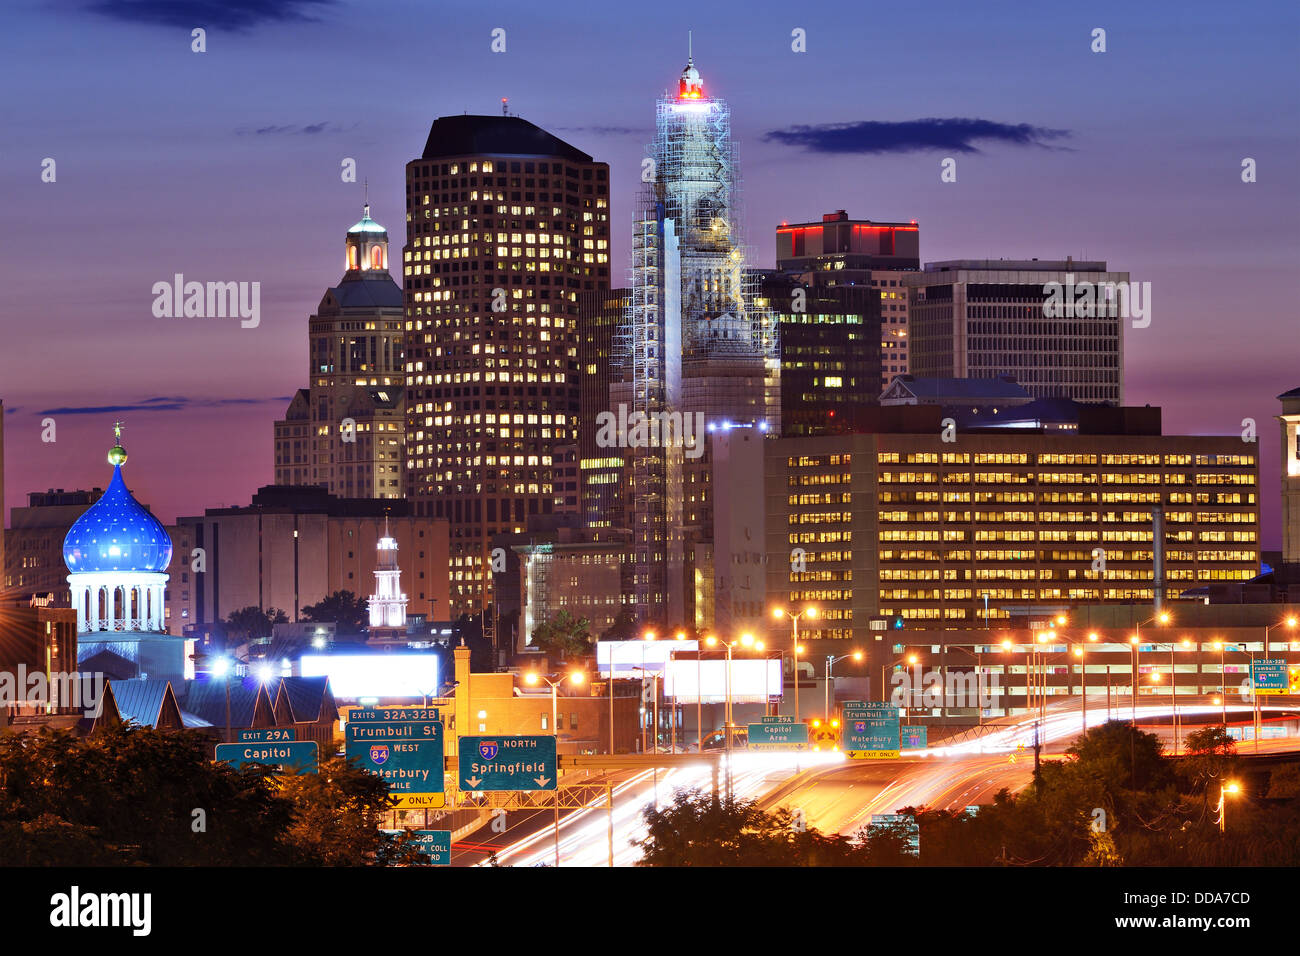 Skyline of downtown Hartford, Connecticut. - Stock Image